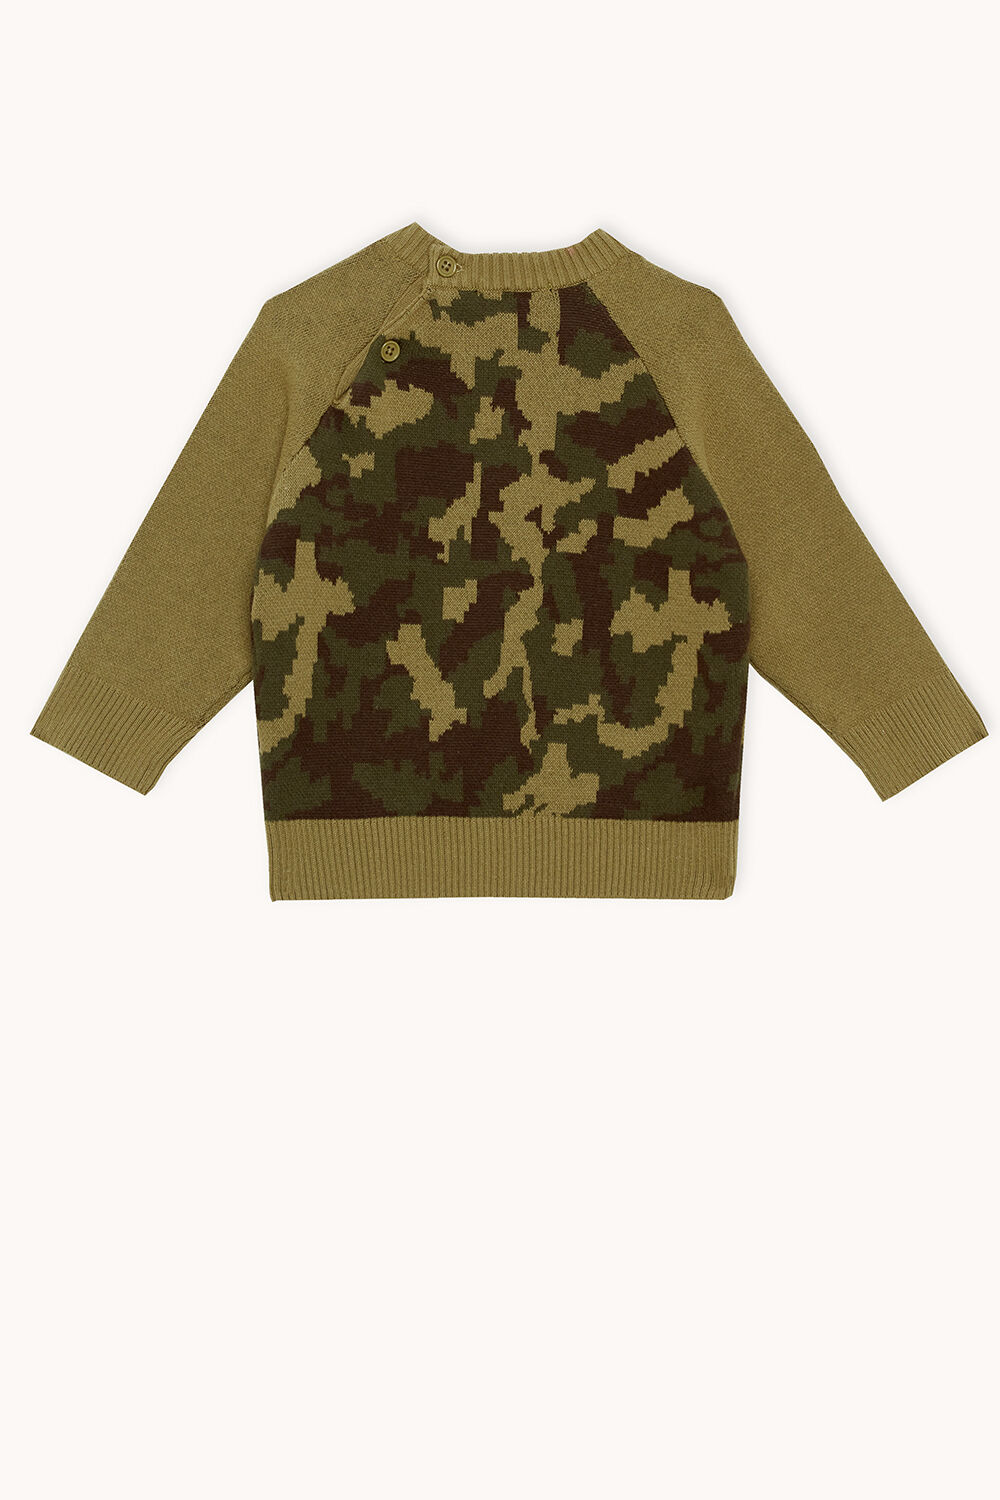 baby boy CAMO KNIT JUMPER in colour BURNT OLIVE